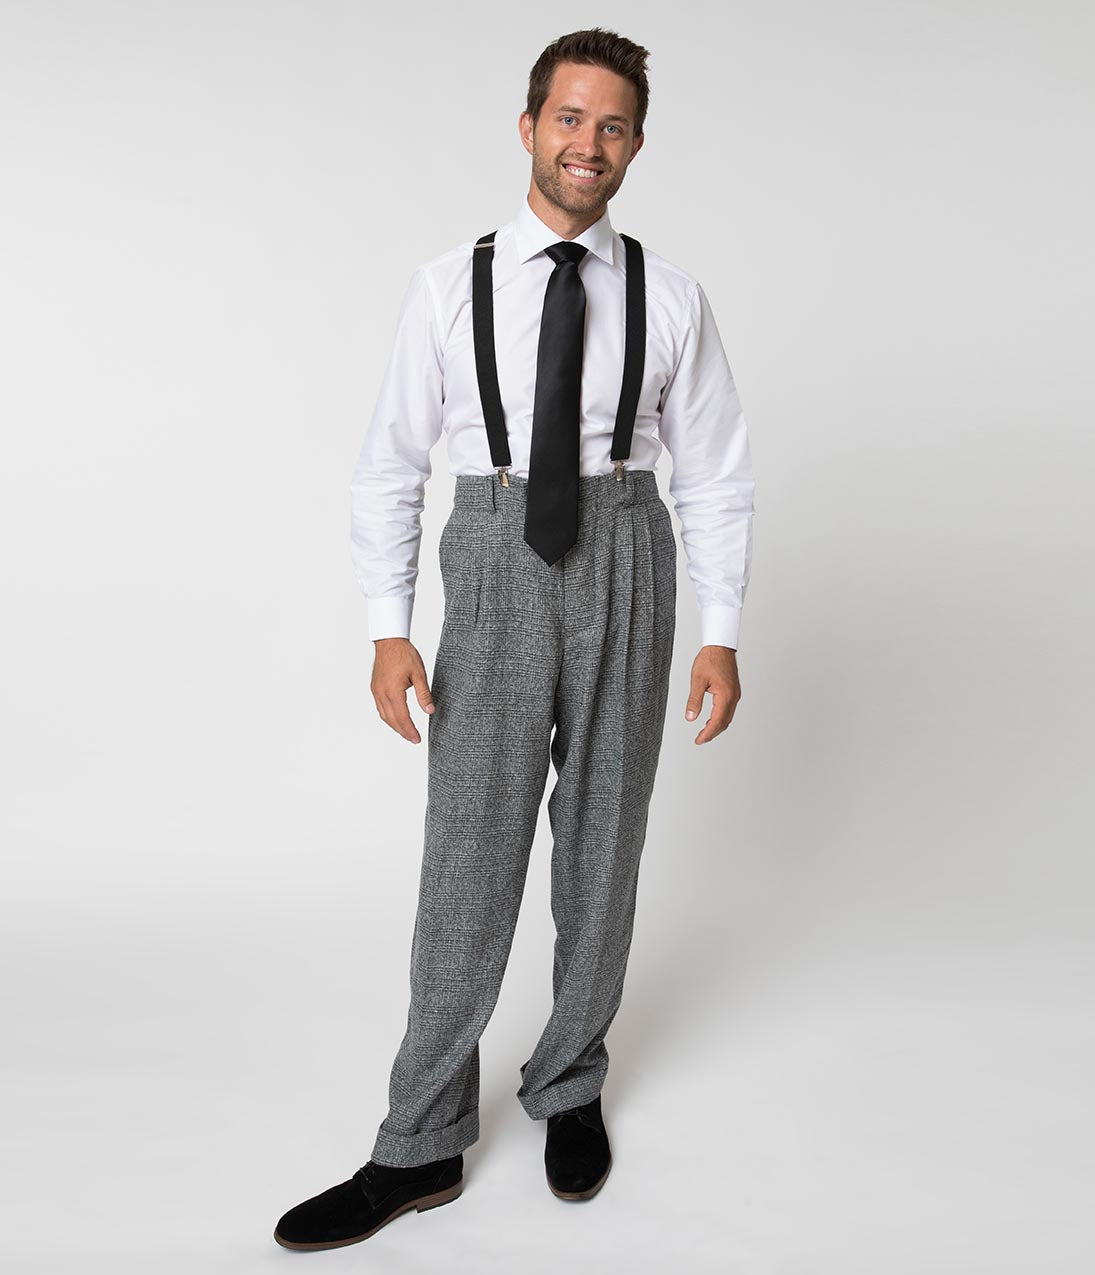 Men's Vintage Pants, Trousers, Jeans, Overalls Unique Vintage 1930S Style Grey Checkered Woven Men Pants $88.00 AT vintagedancer.com